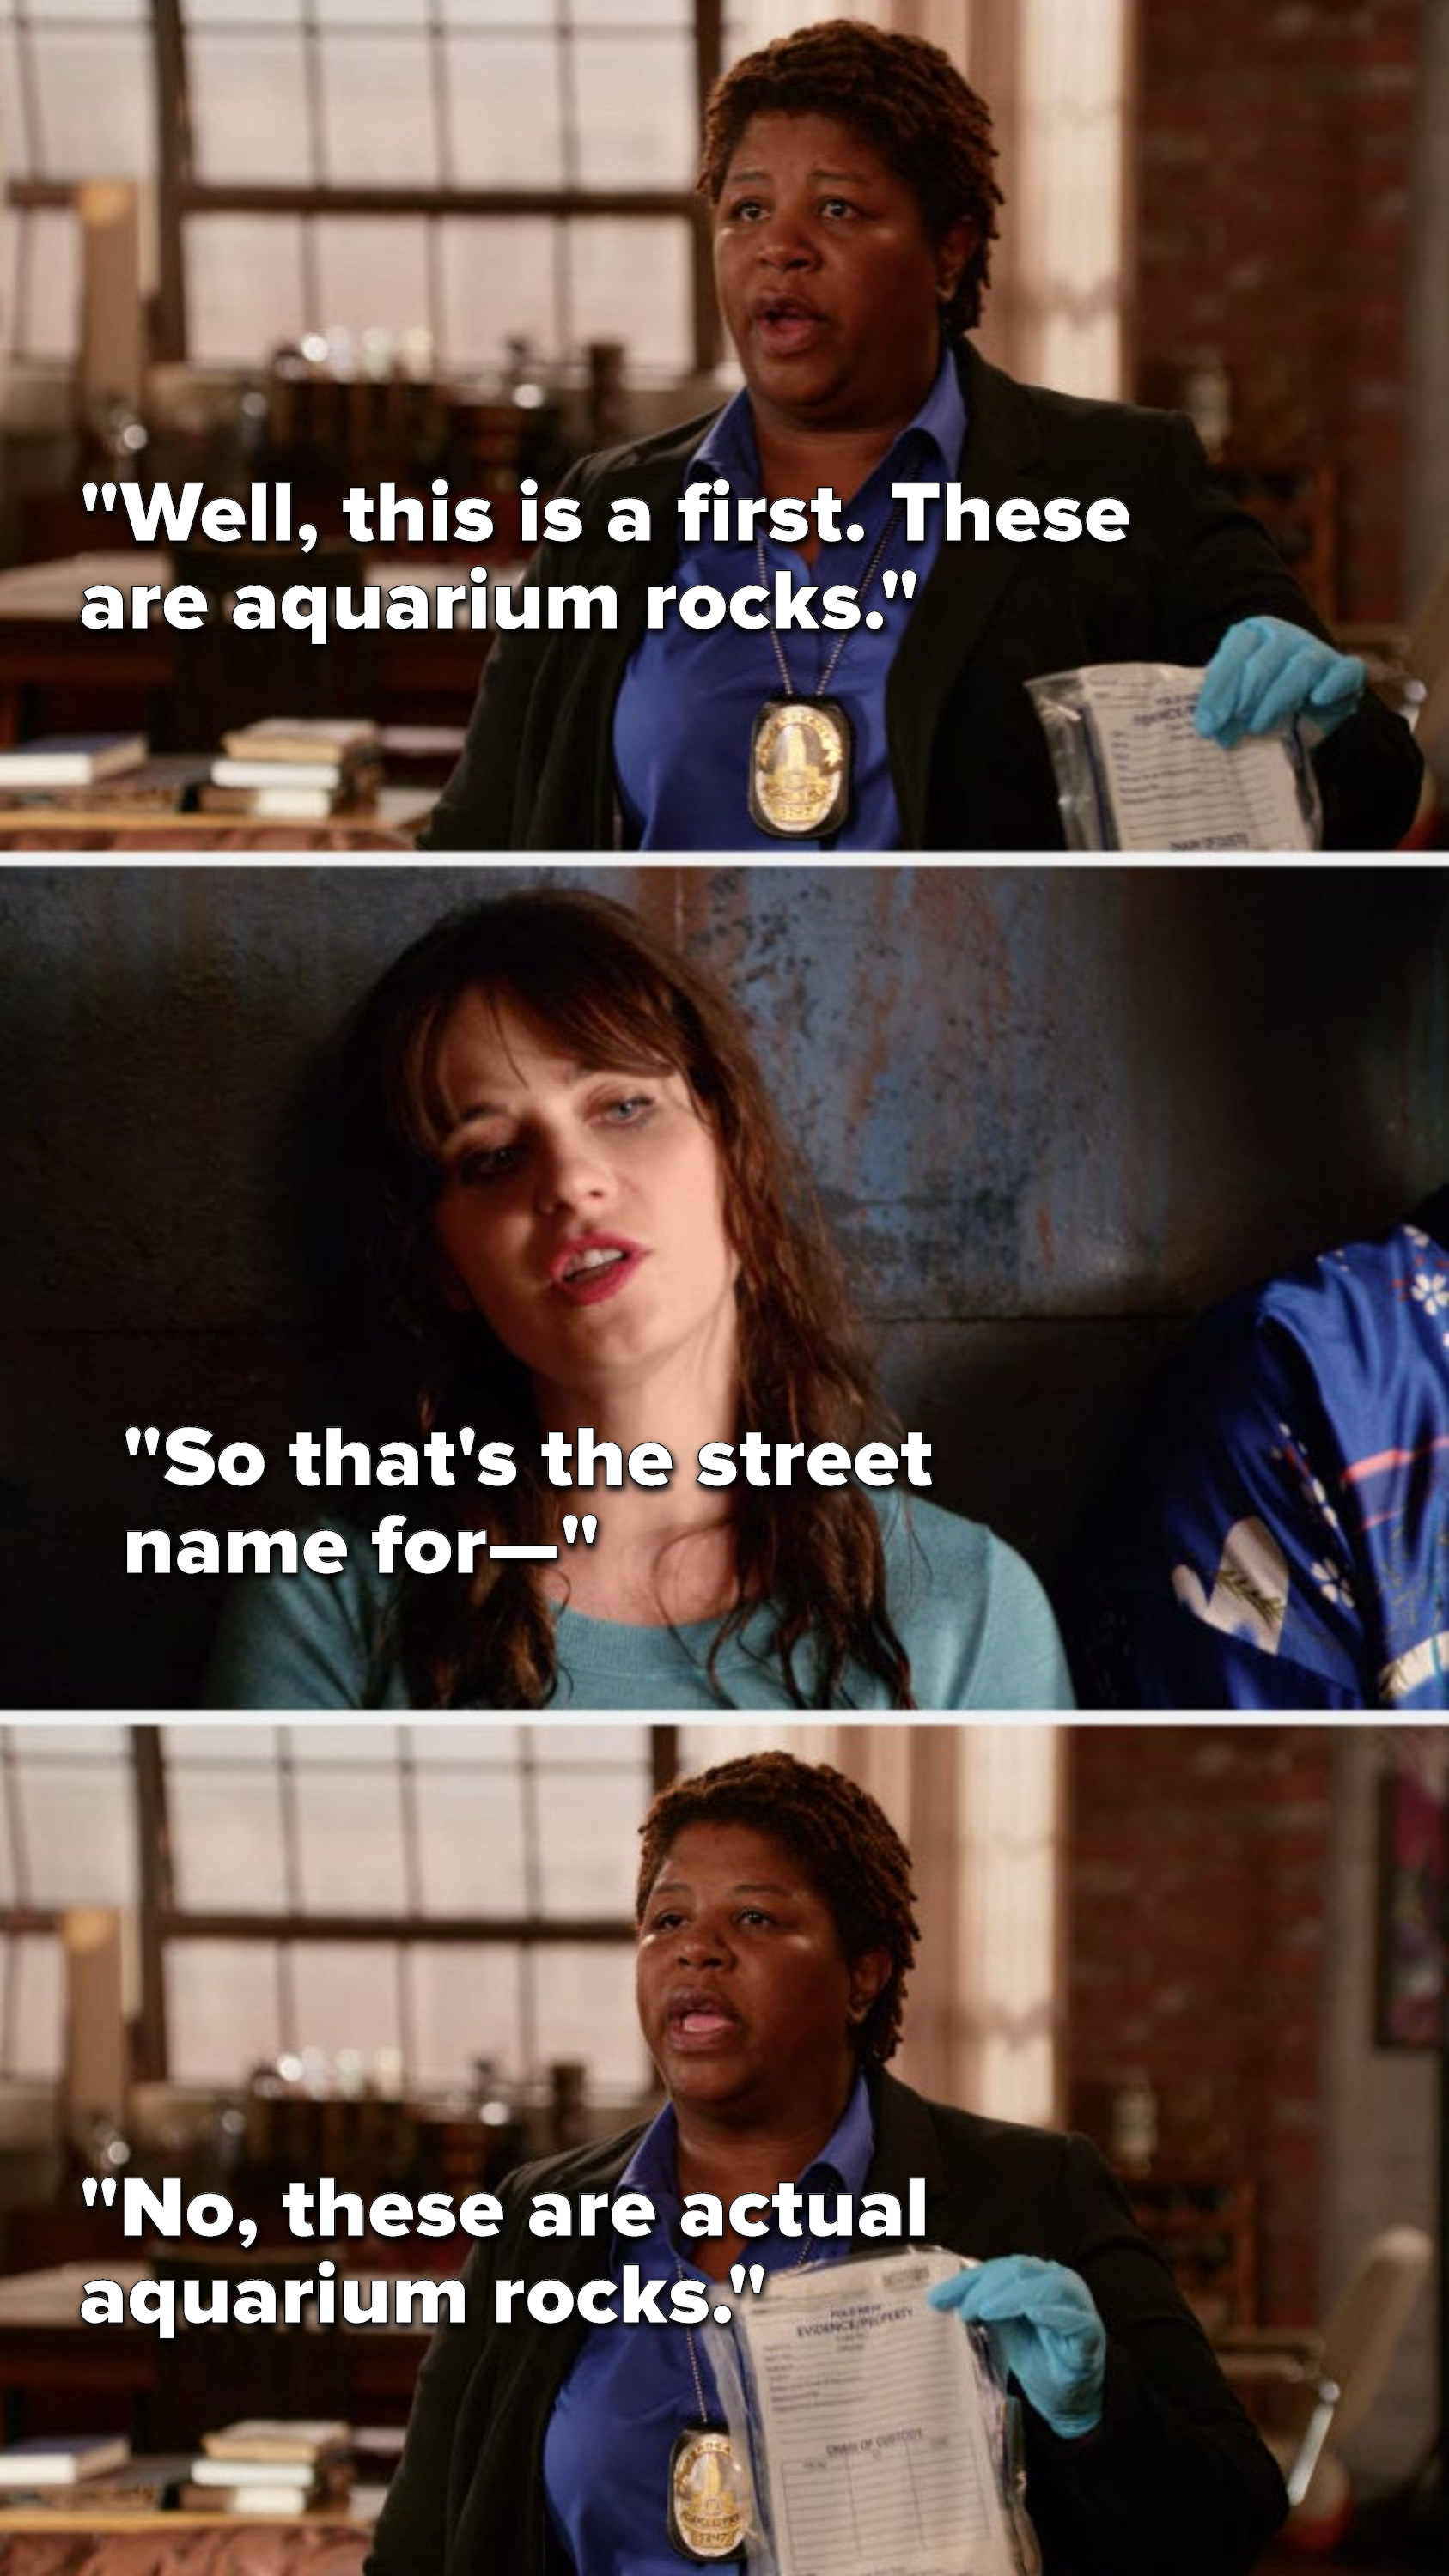 """Dorado says, """"Well, this is a first, these are aquarium rocks,"""" Jess says, """"So that's the street name for—,"""" and Dorado says, """"No, these are actual aquarium rocks"""""""